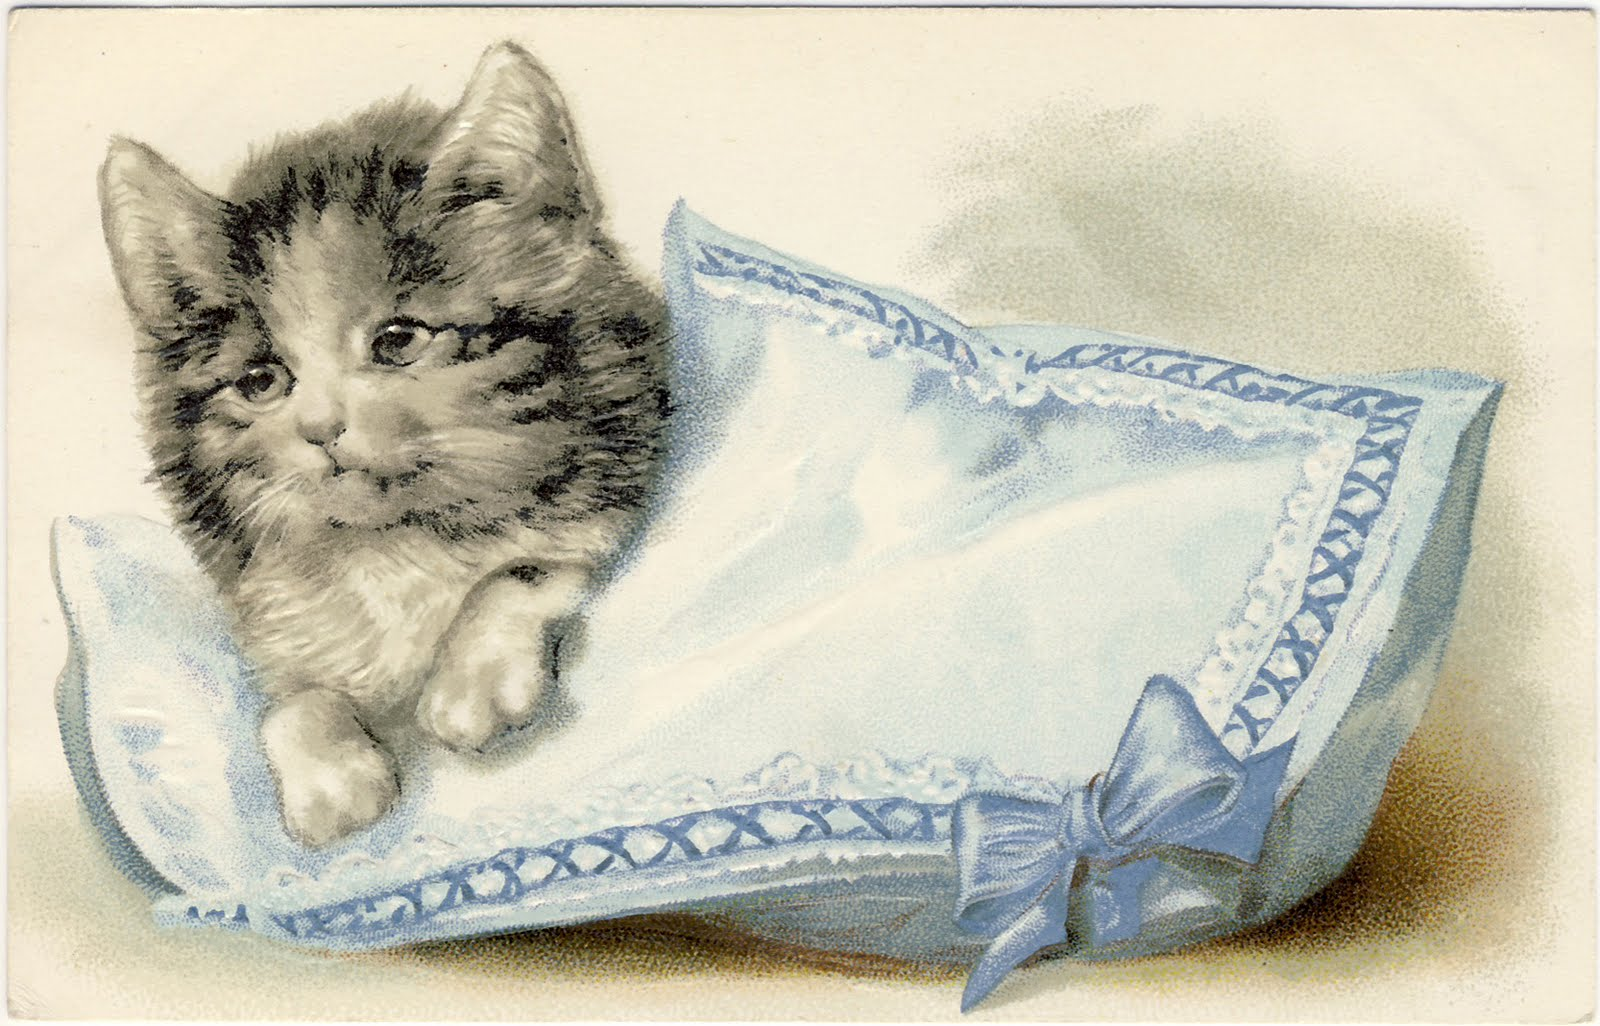 Vintage Clip Art - Adorable Cats - Kittens - The Graphics Fairy